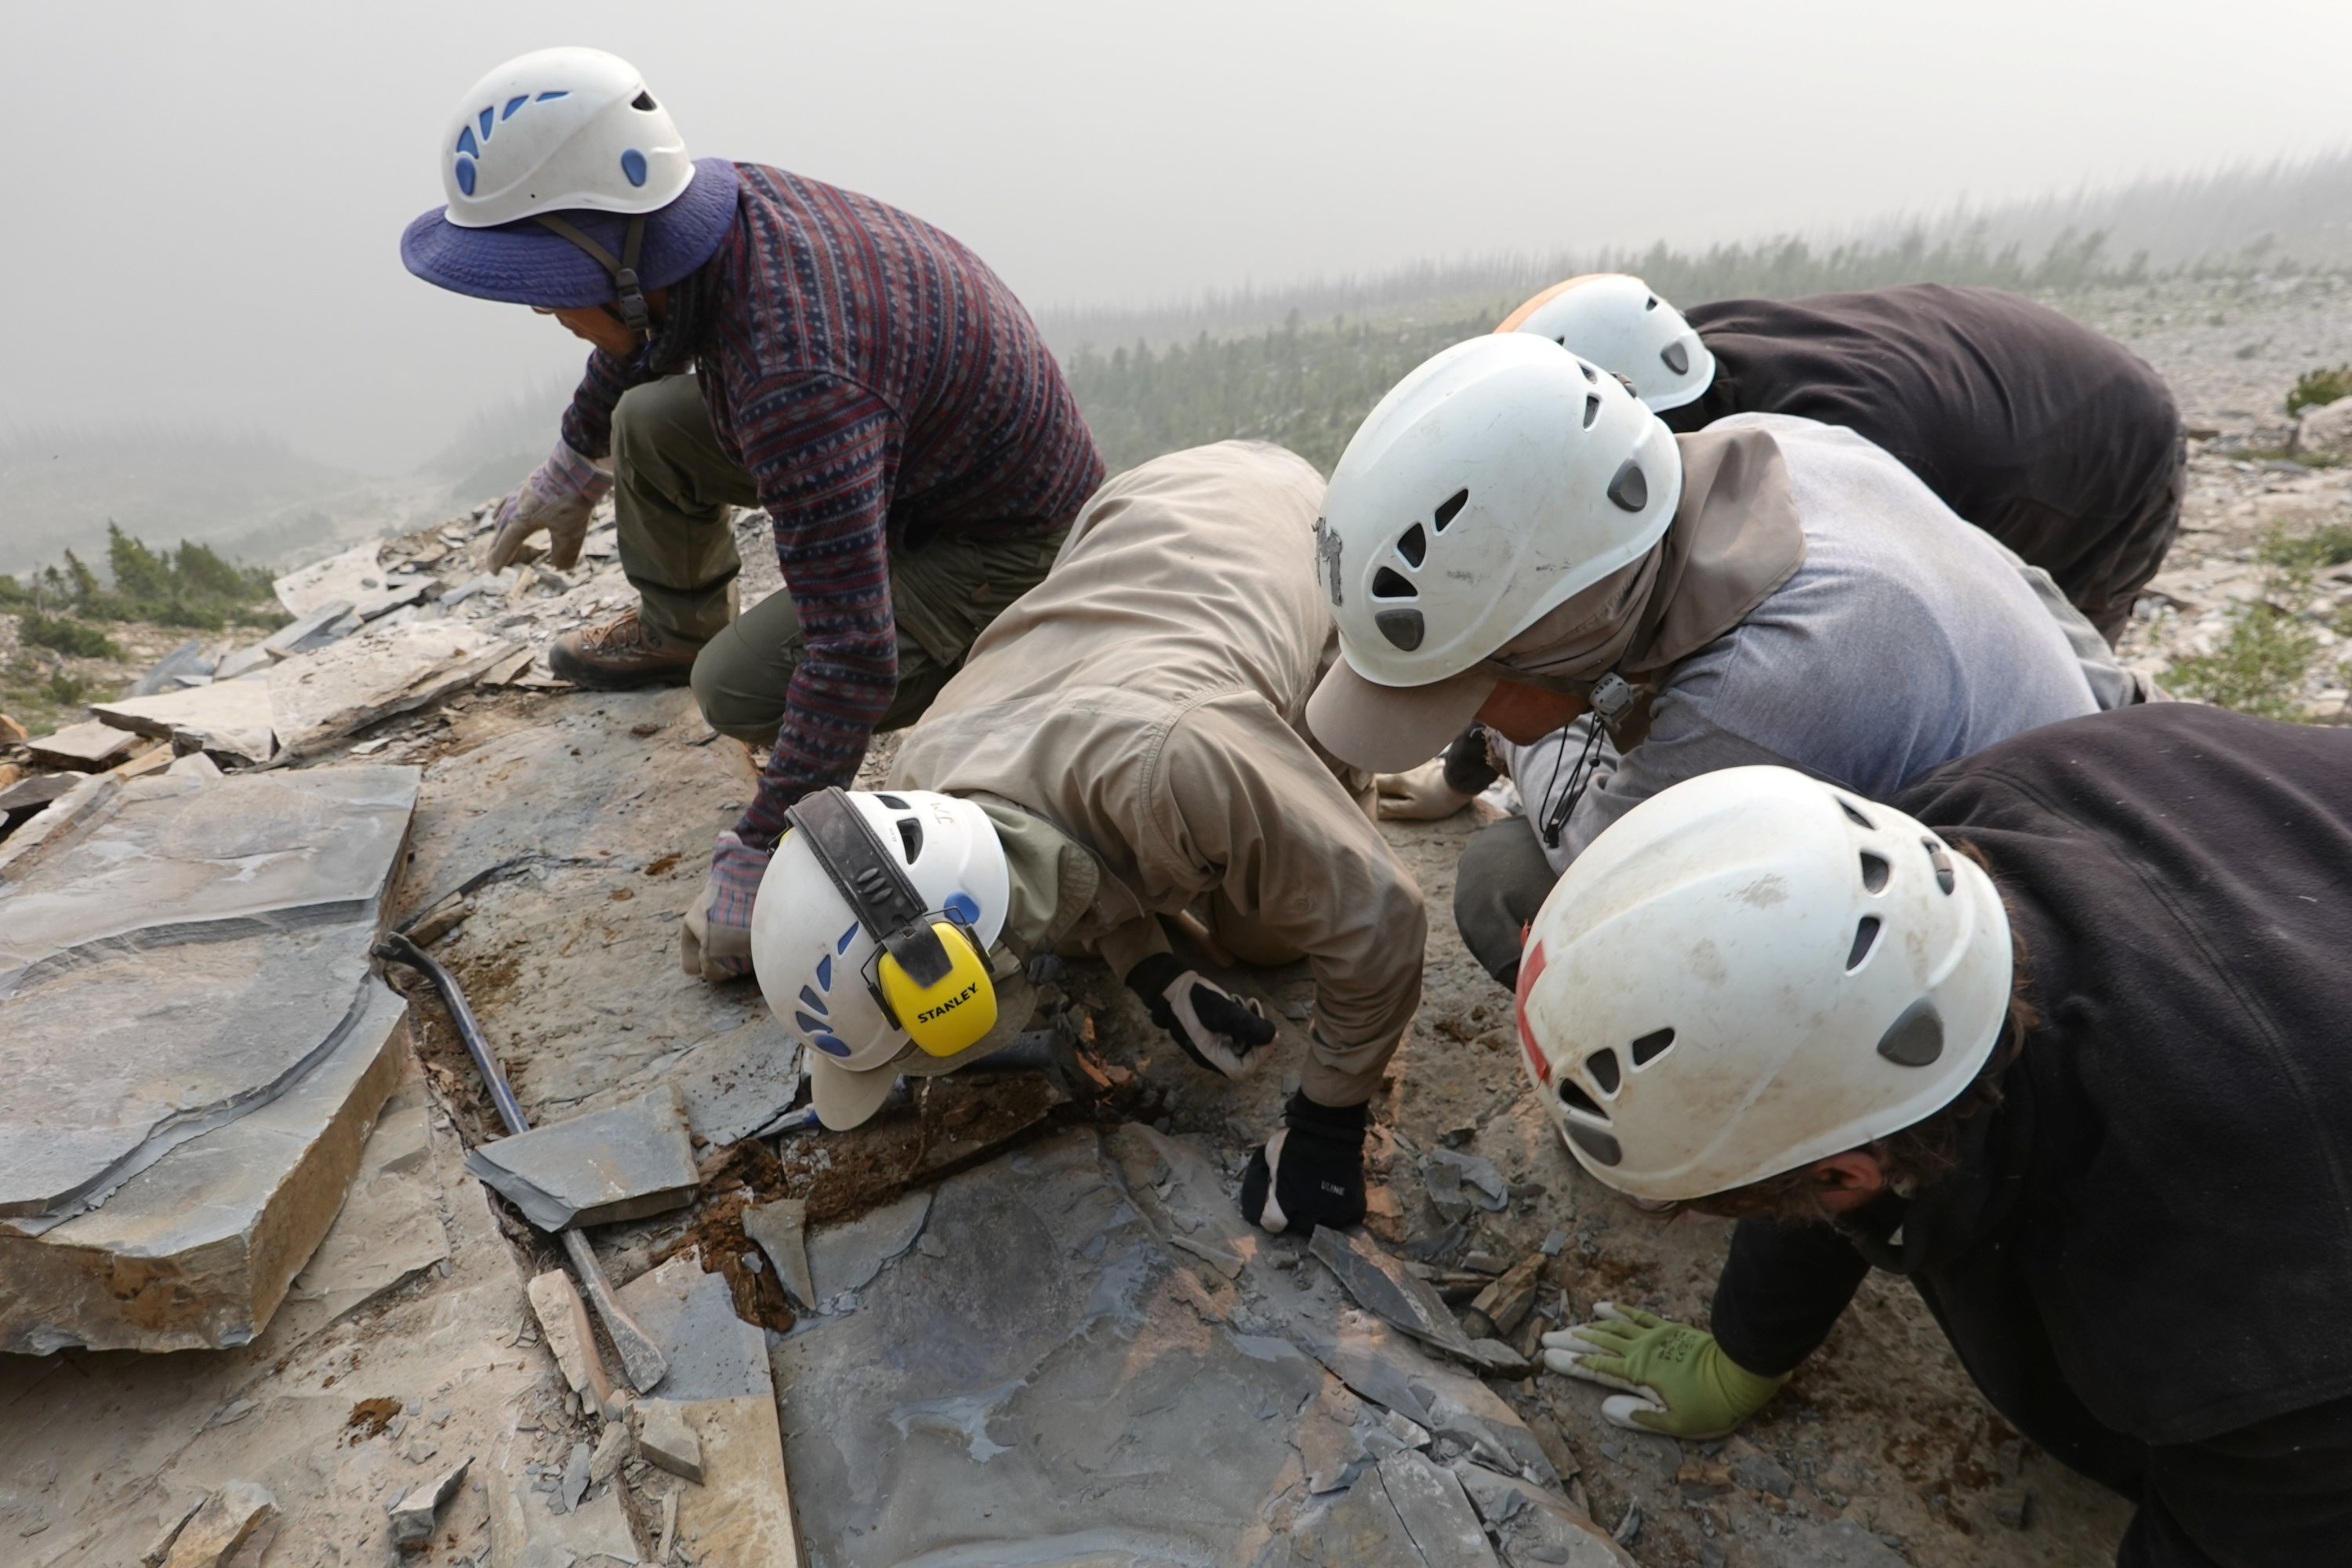 Members of the Royal Ontario Museum fieldwork crew extract a shale slab containing a fossil of Titanokorys gainesi during the 2018 fieldwork season, at the Kootenay National Park, British Columbia, Canada, 2018. (Reuters Photo)